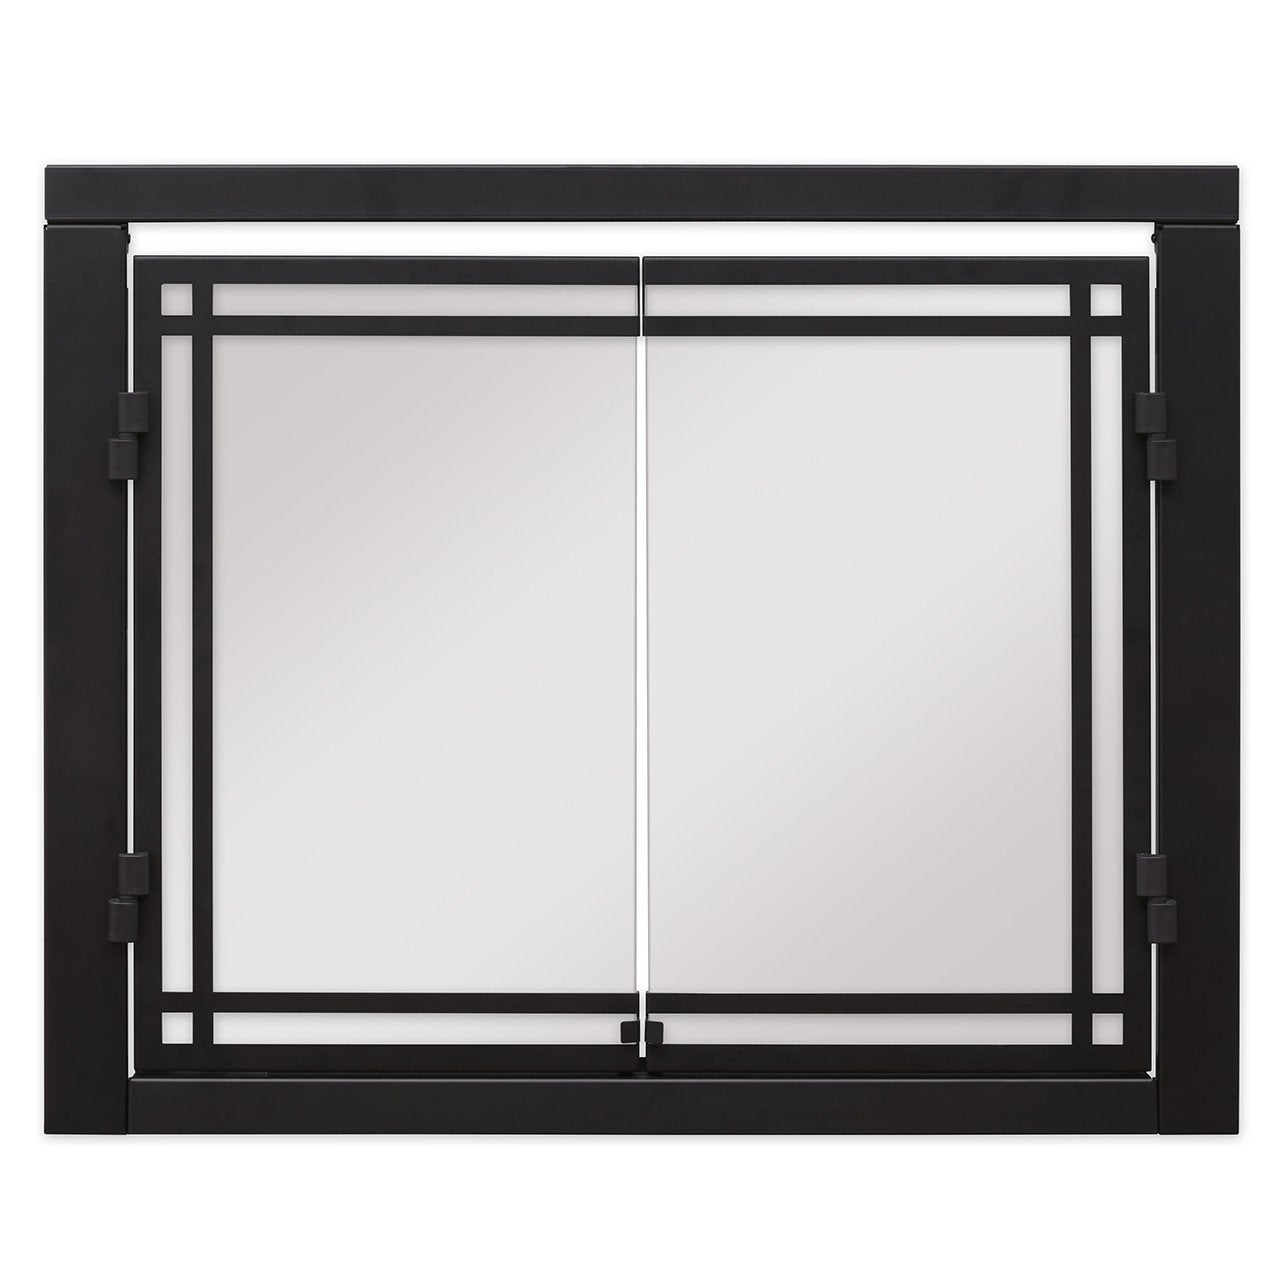 Dimplex Door Kit for Revillusion RBF36P Electric Firebox (RBFDOOR36P)